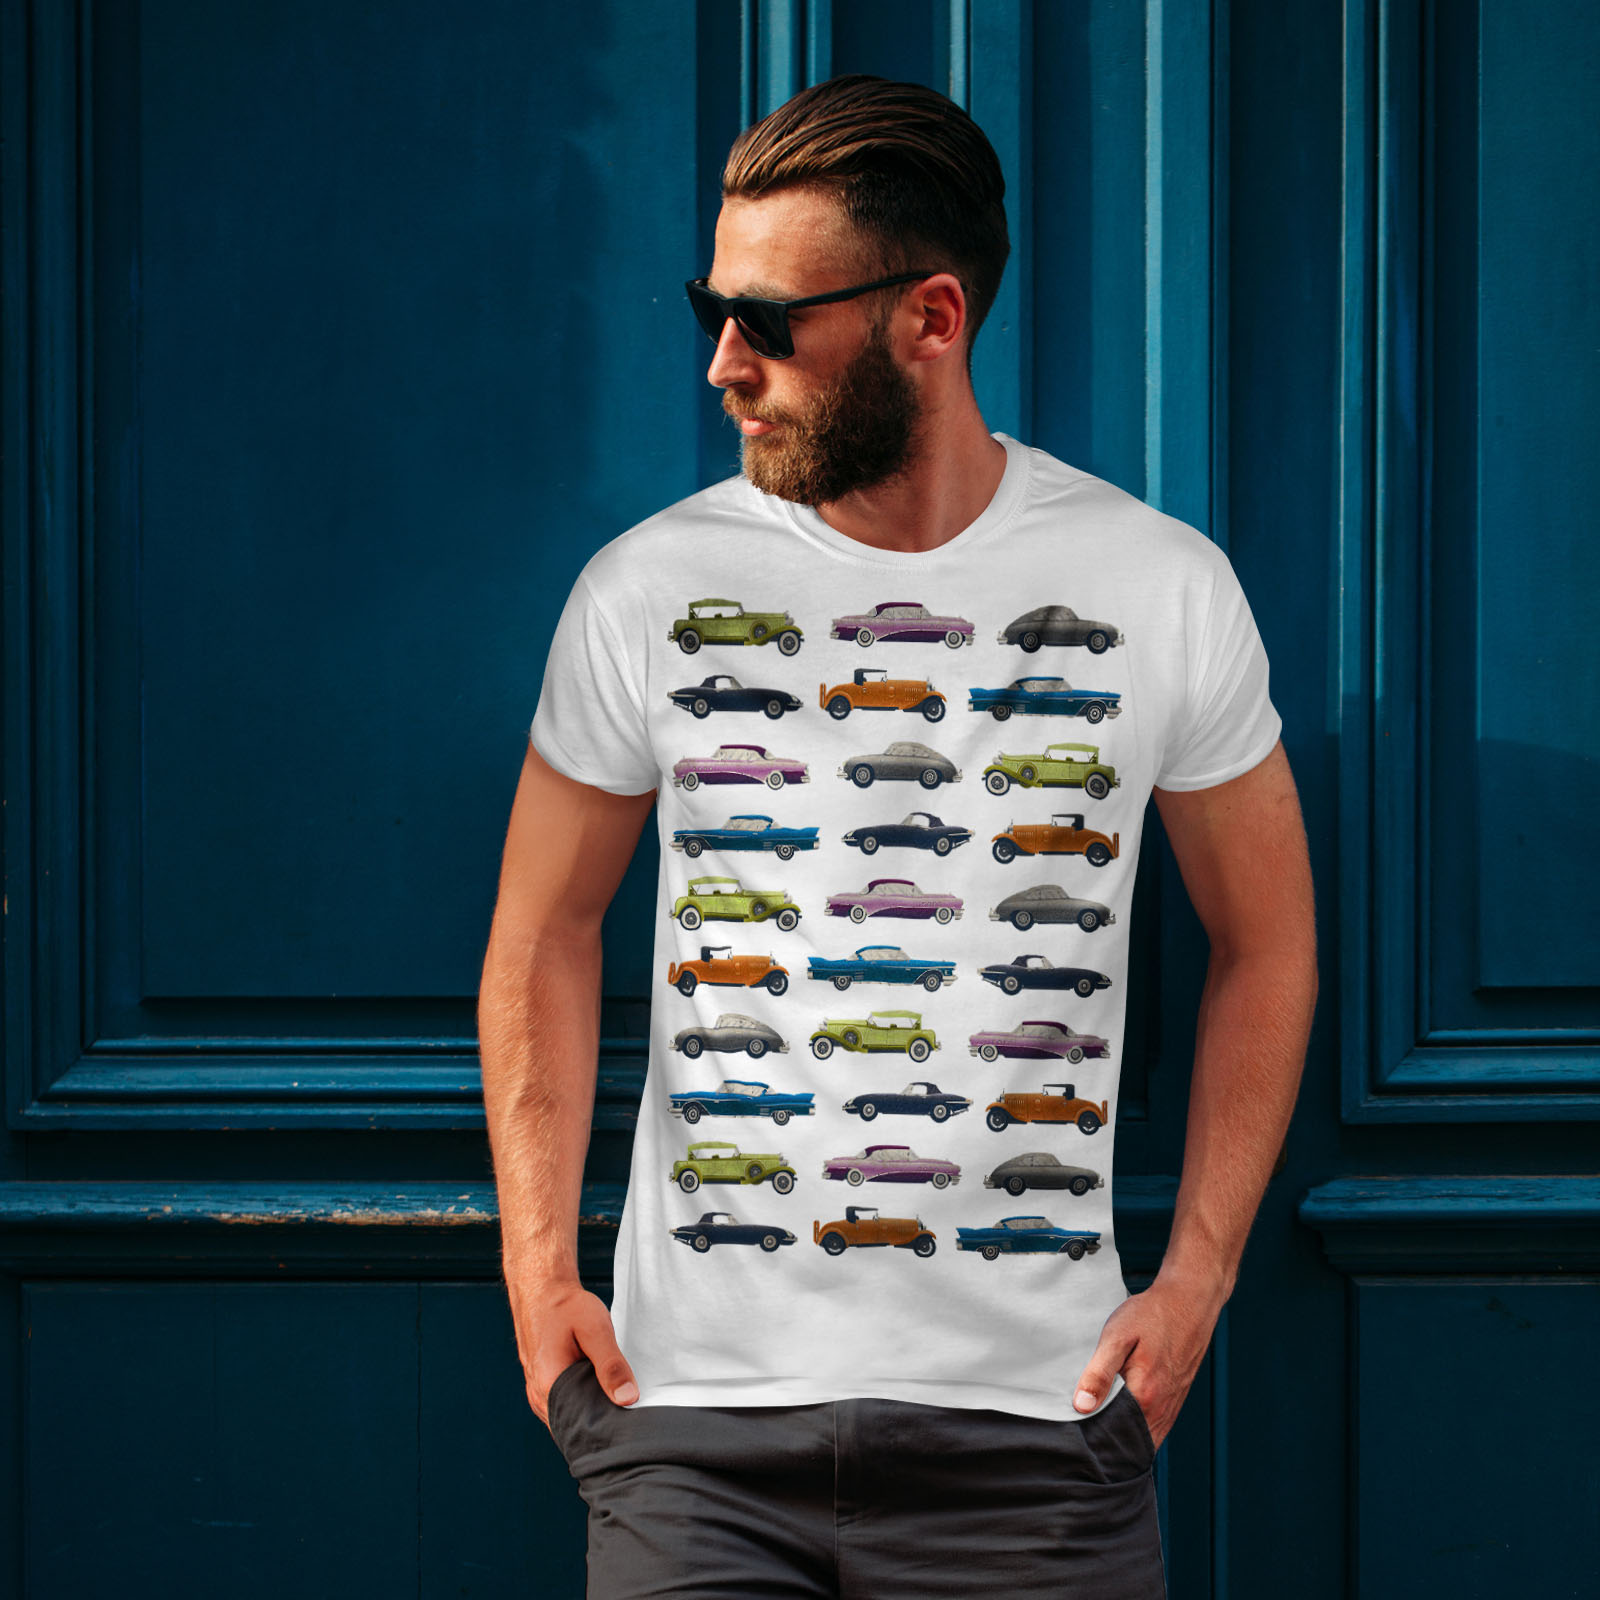 Wellcoda-Classic-Old-Pattern-Car-Mens-T-shirt-Retro-Graphic-Design-Printed-Tee thumbnail 10